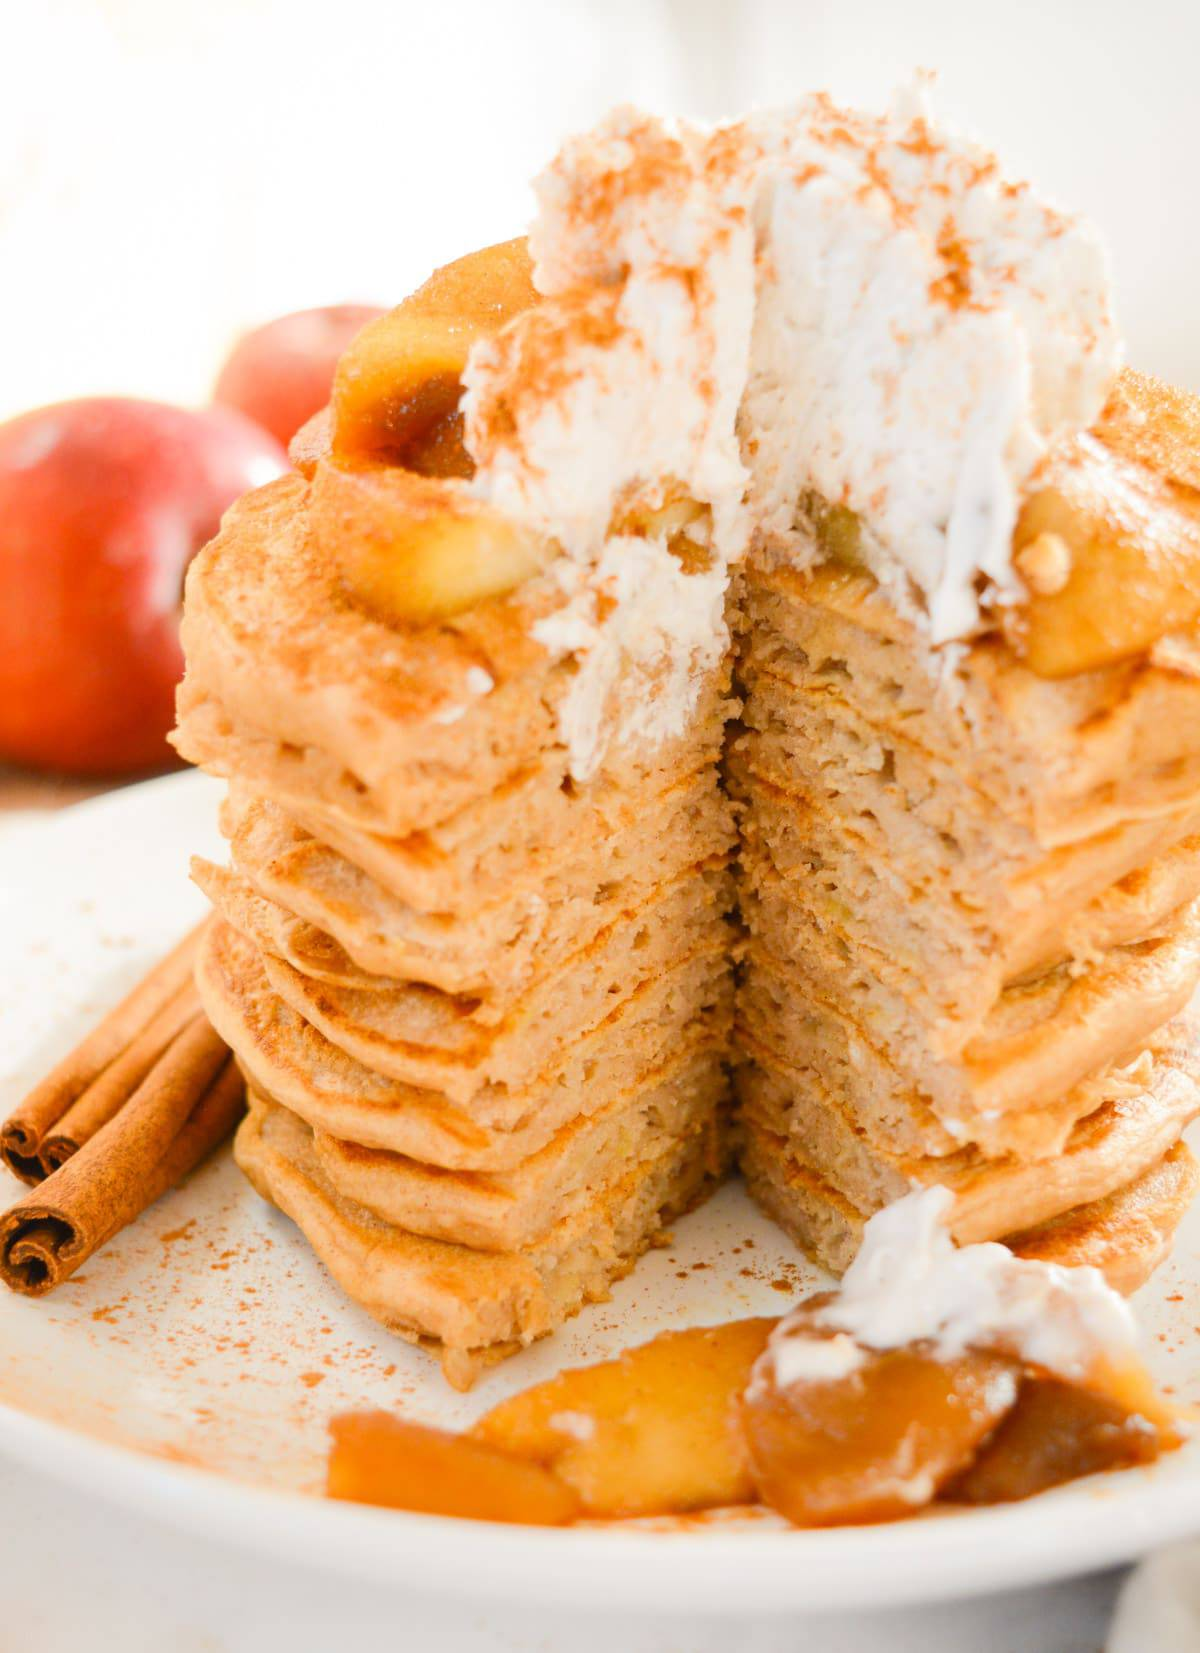 Vegan apple cinnamon pancakes with cooked apples and whipped cream on top and a bite removed.